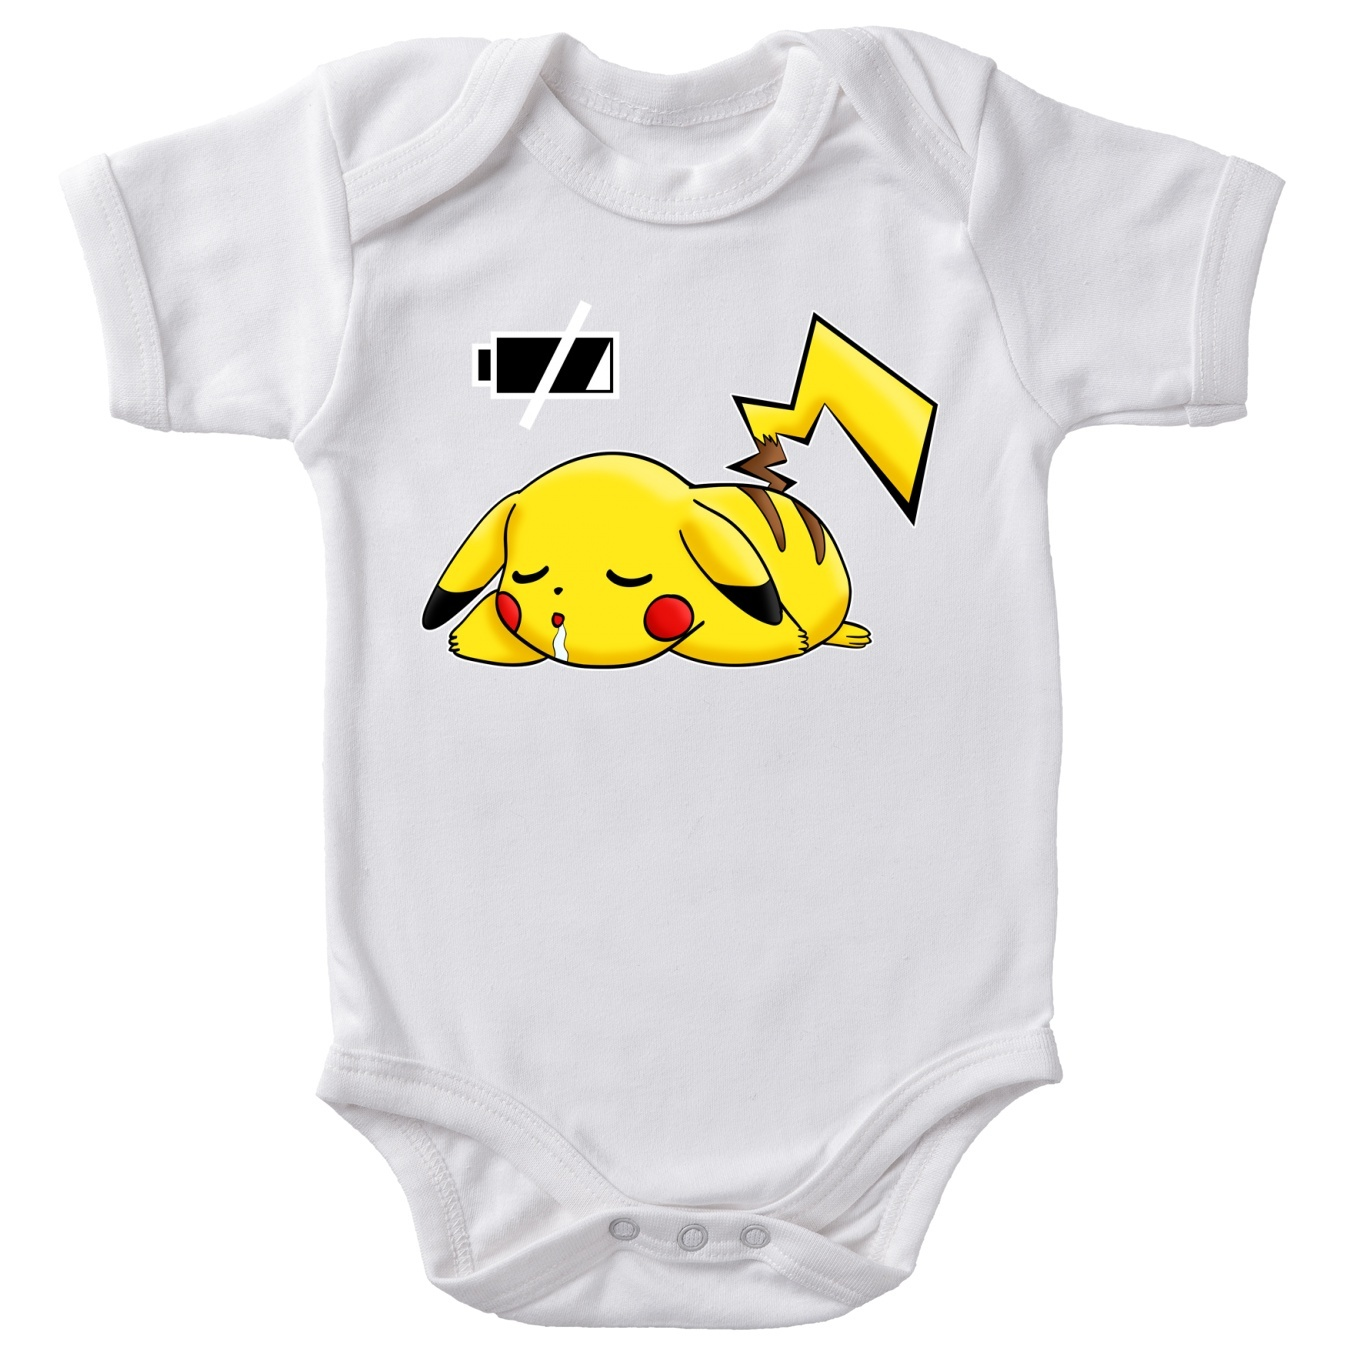 Short sleeve Baby Bodysuits Video Games Parodies